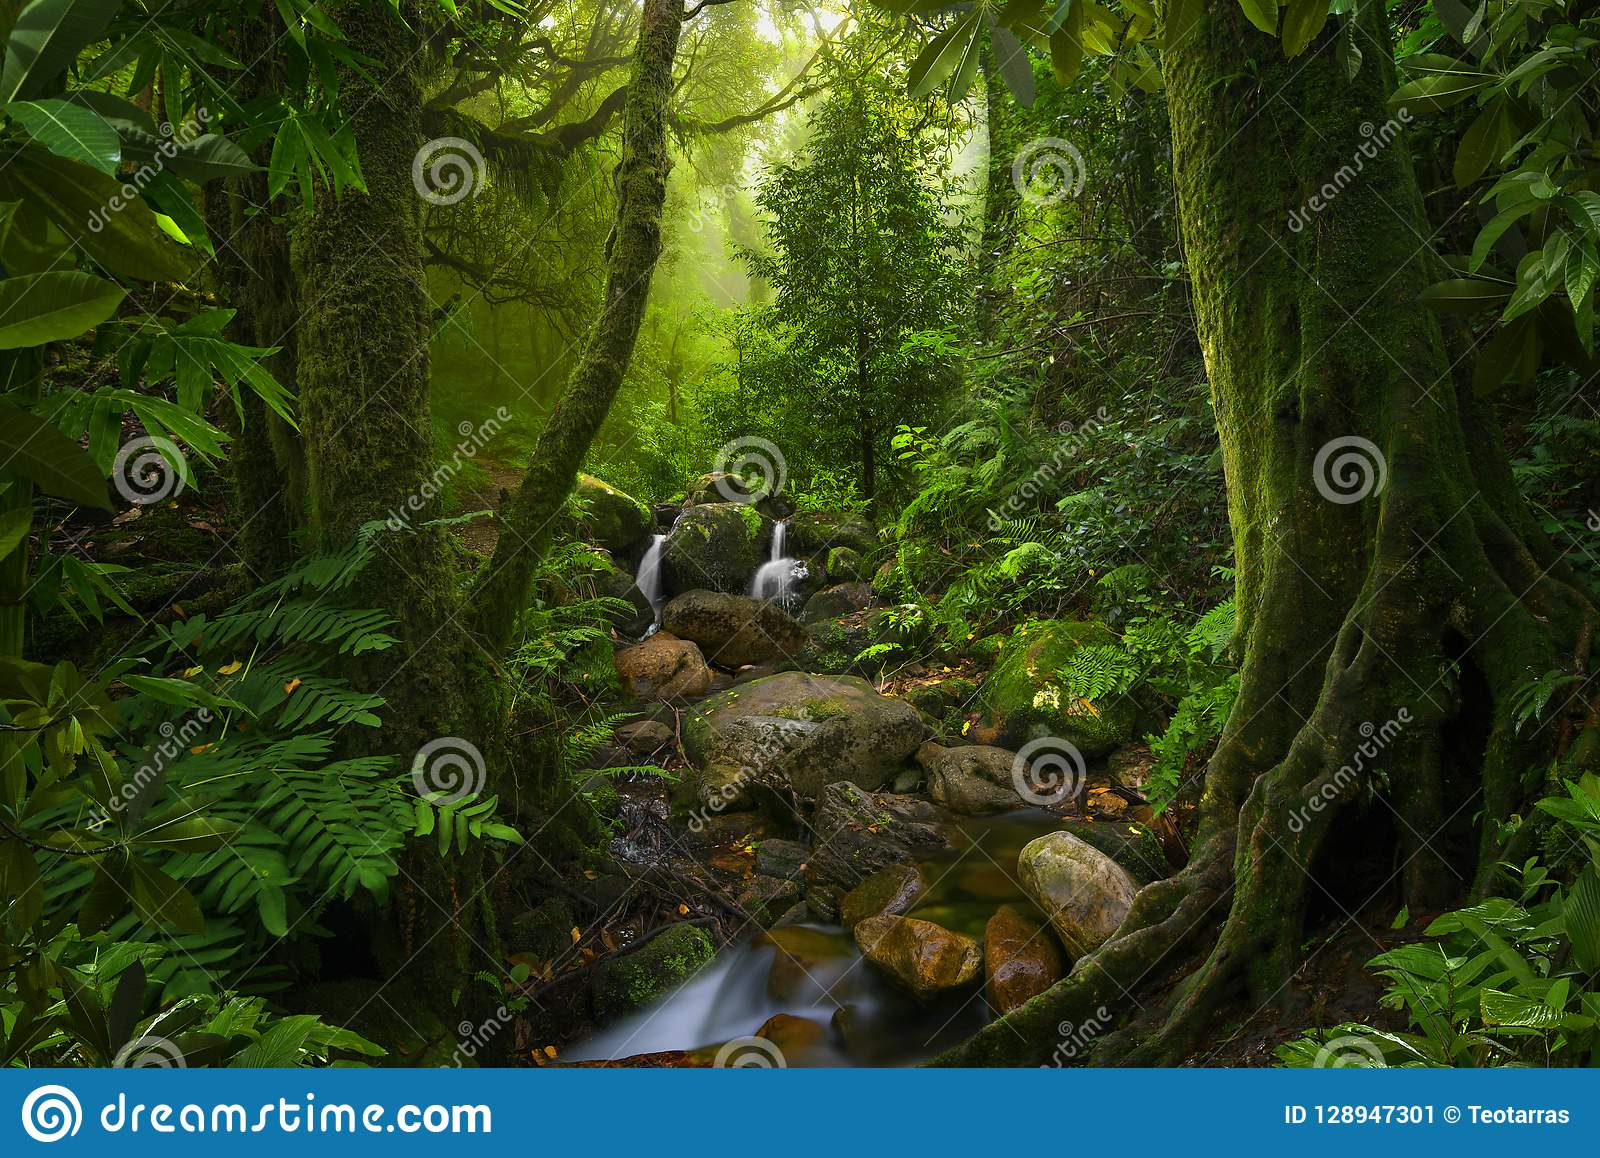 Southeast Asian Deep Jungle Stock Image - Image of fantasy